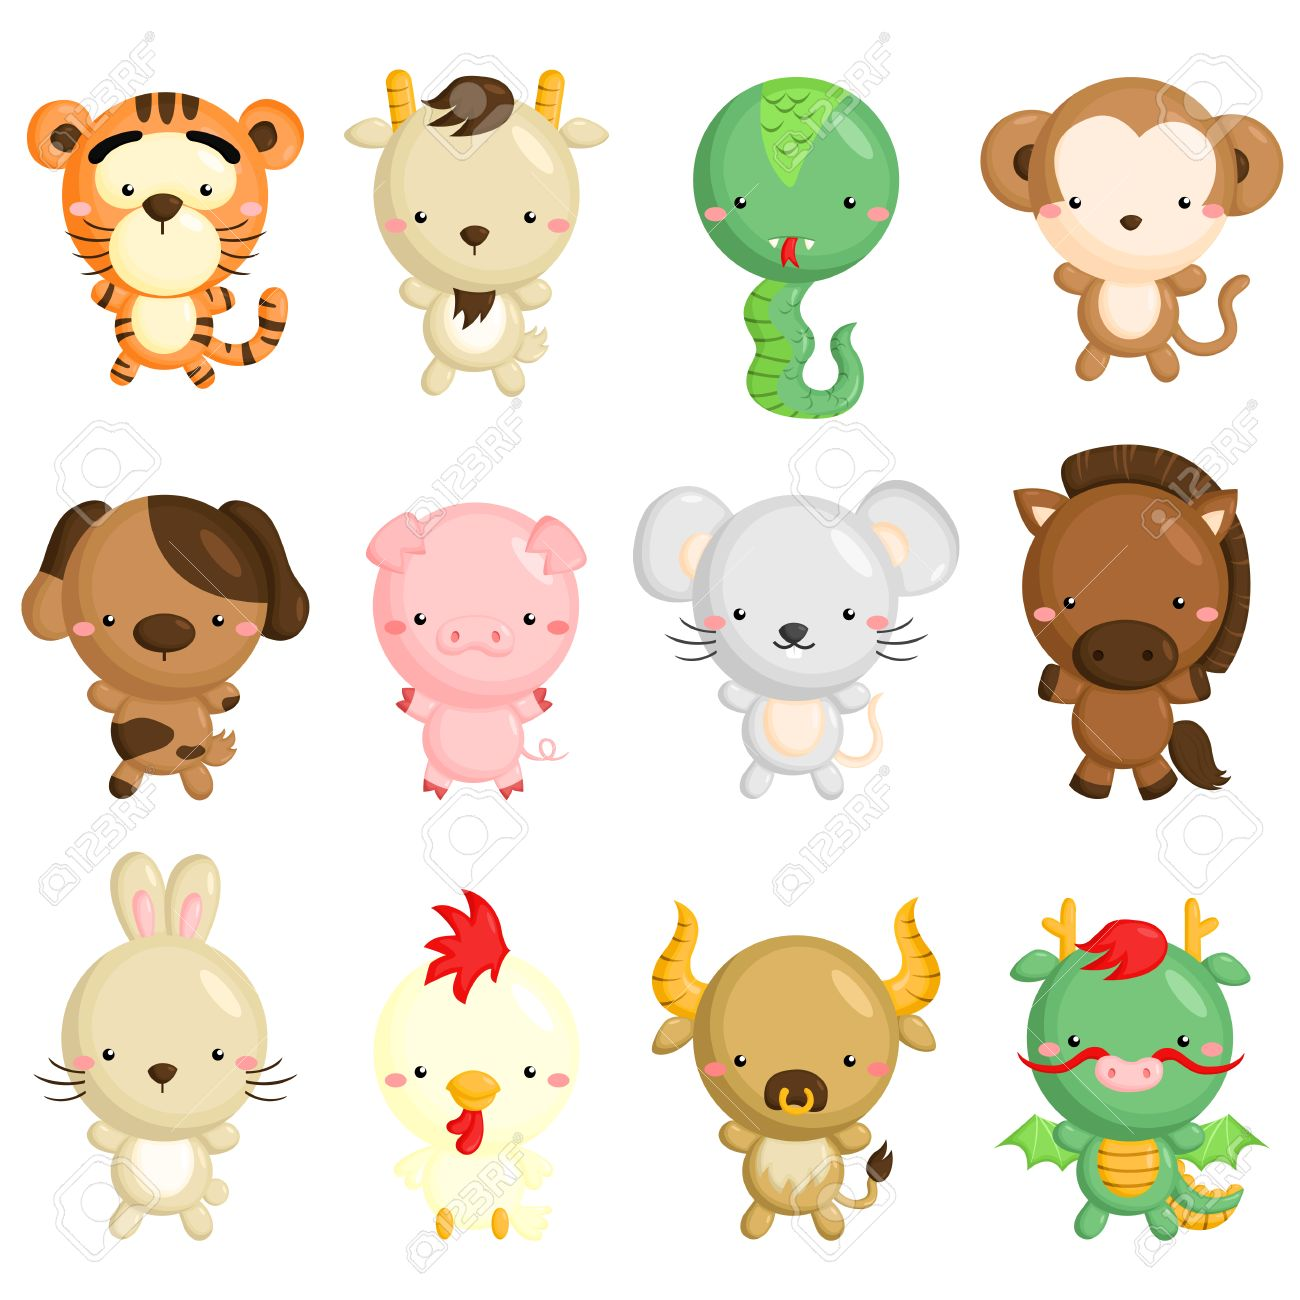 Chinese Zodiac Animals Royalty Free Cliparts, Vectors, And Stock ...